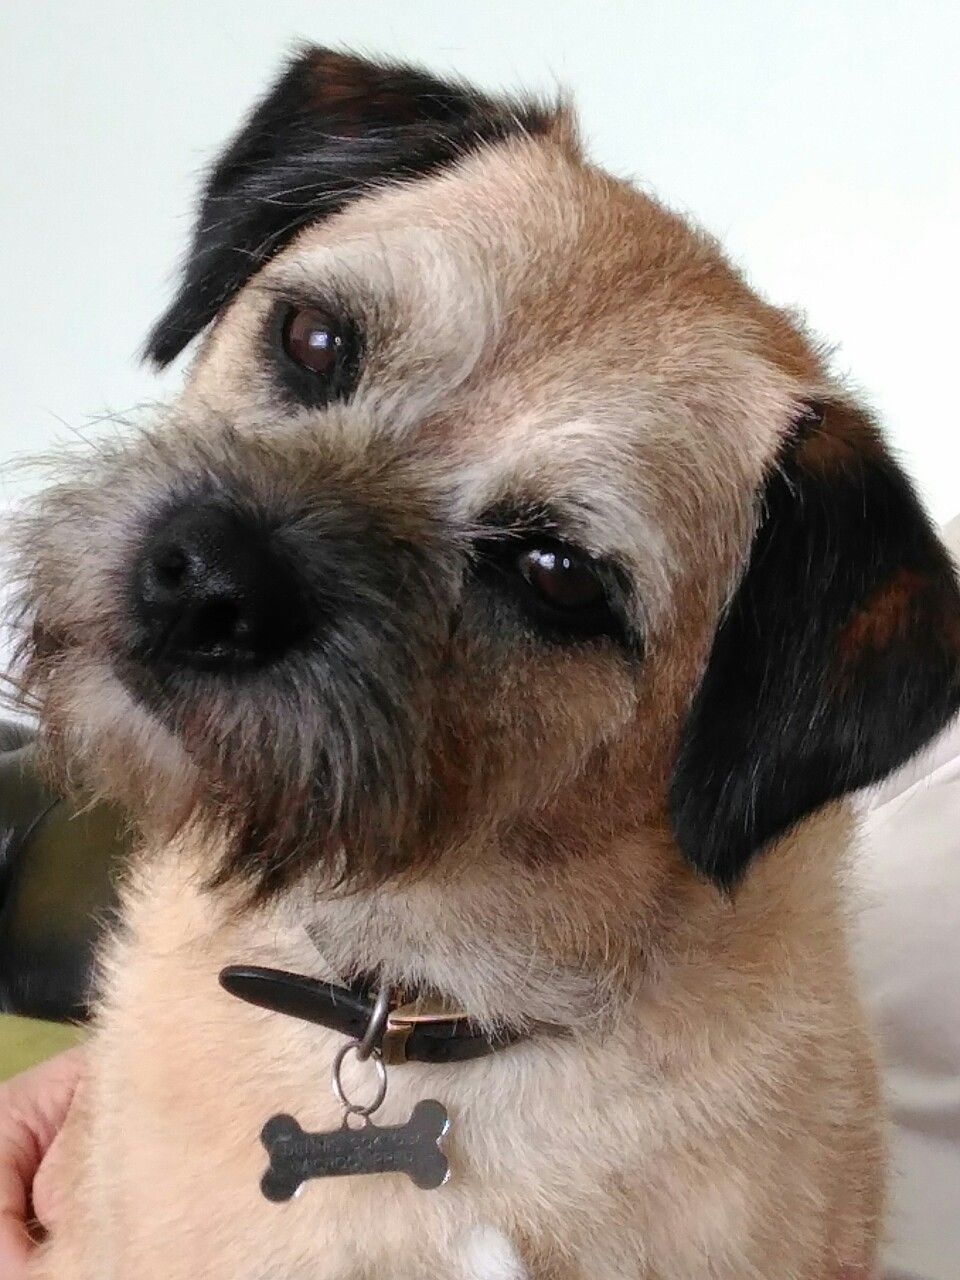 I Wish I Understood Human Border Terrier Puppy Dog Breed Info